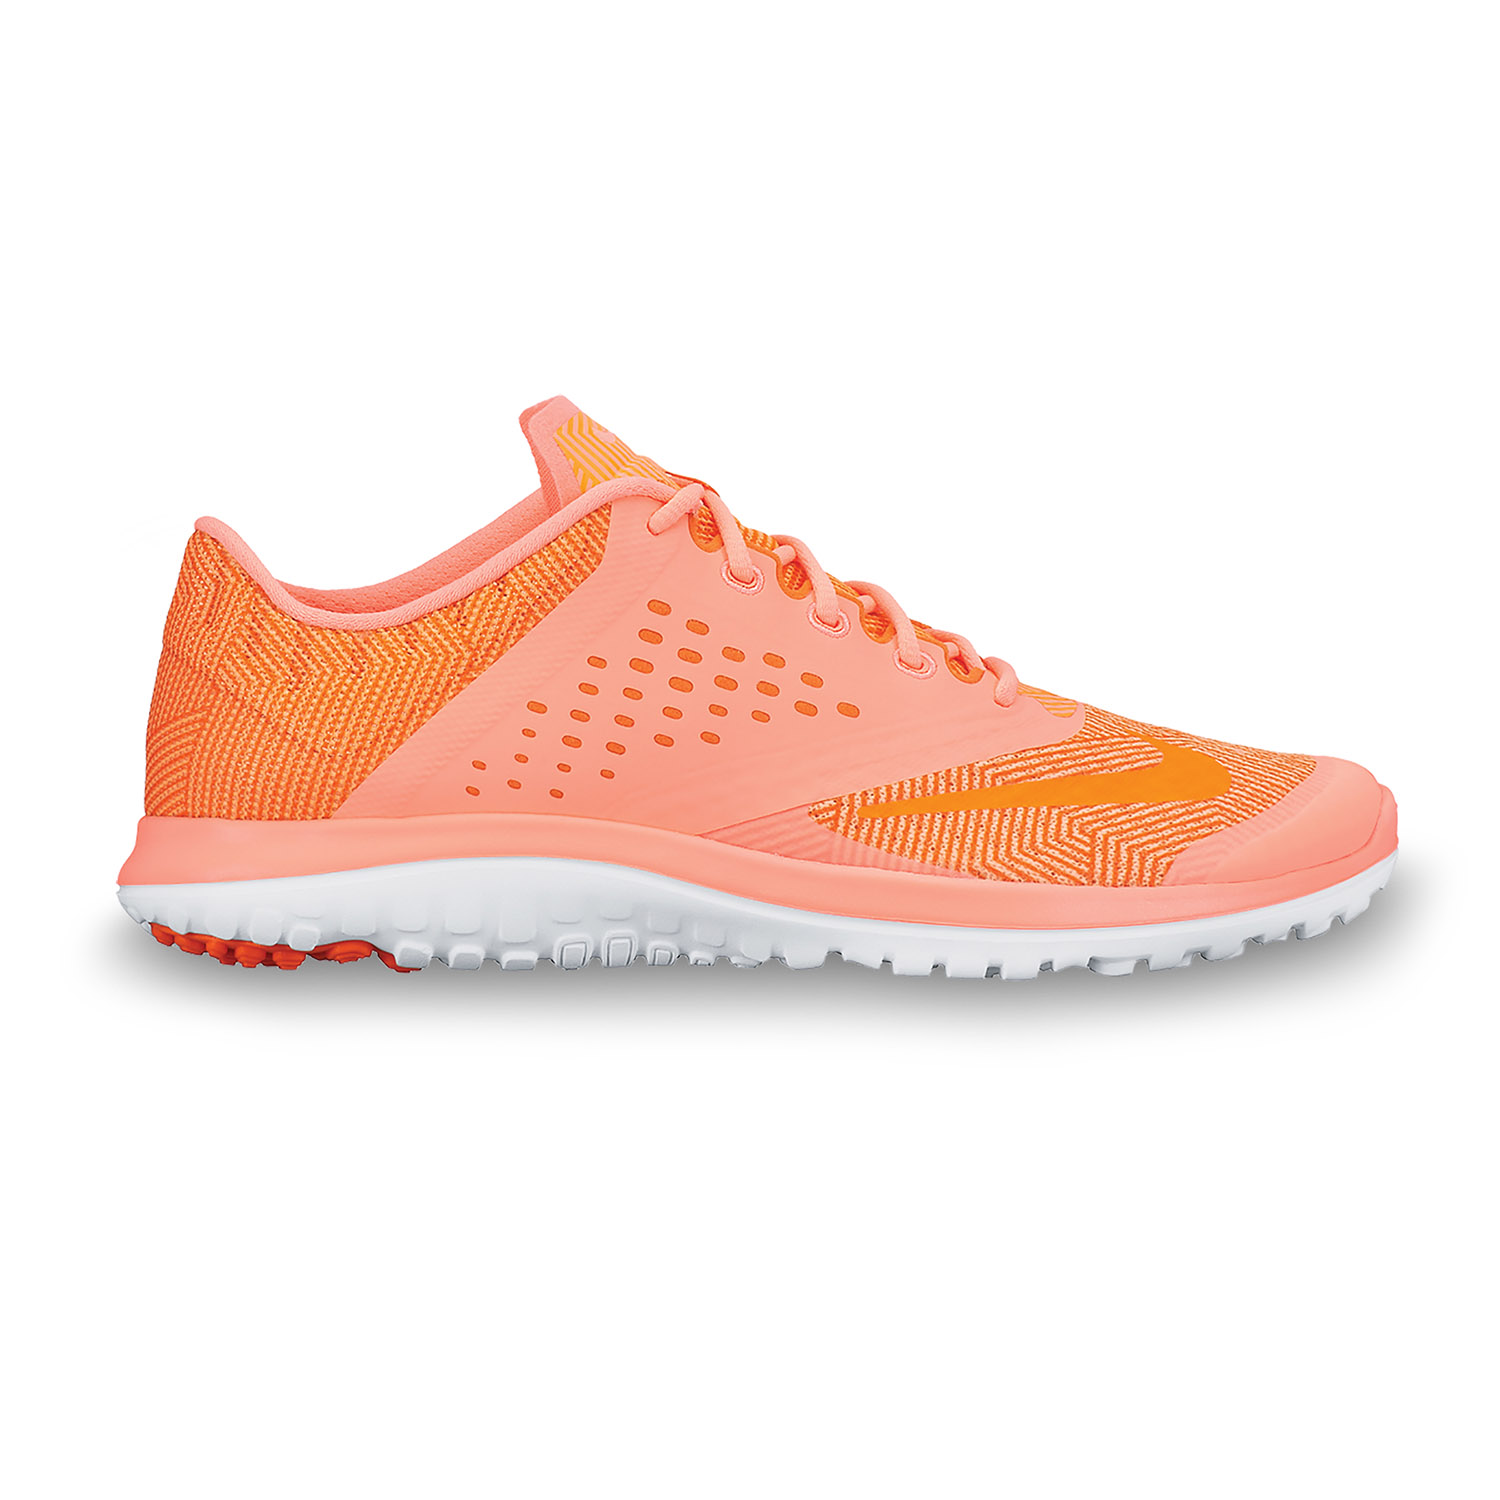 new arrival 0a84f f6536 Nike Women s Nike FS Lite Run 2 Premium Running Shoes